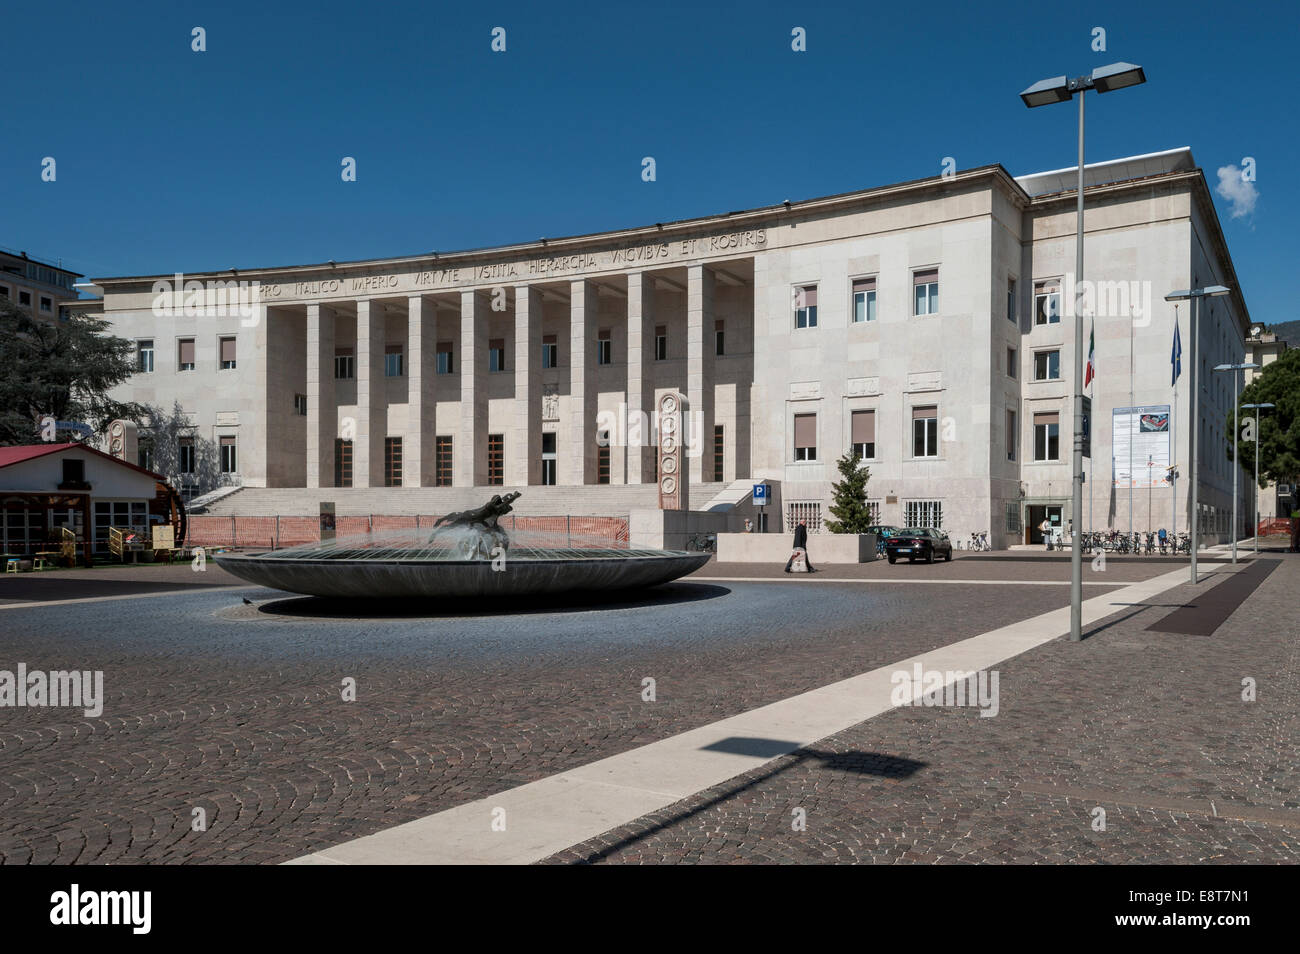 Bozen courthouse, monumental building in fascism under Mussolini, 1942, Neustadt, Gries-Quirein, Bolzano, Trentino - Stock Image